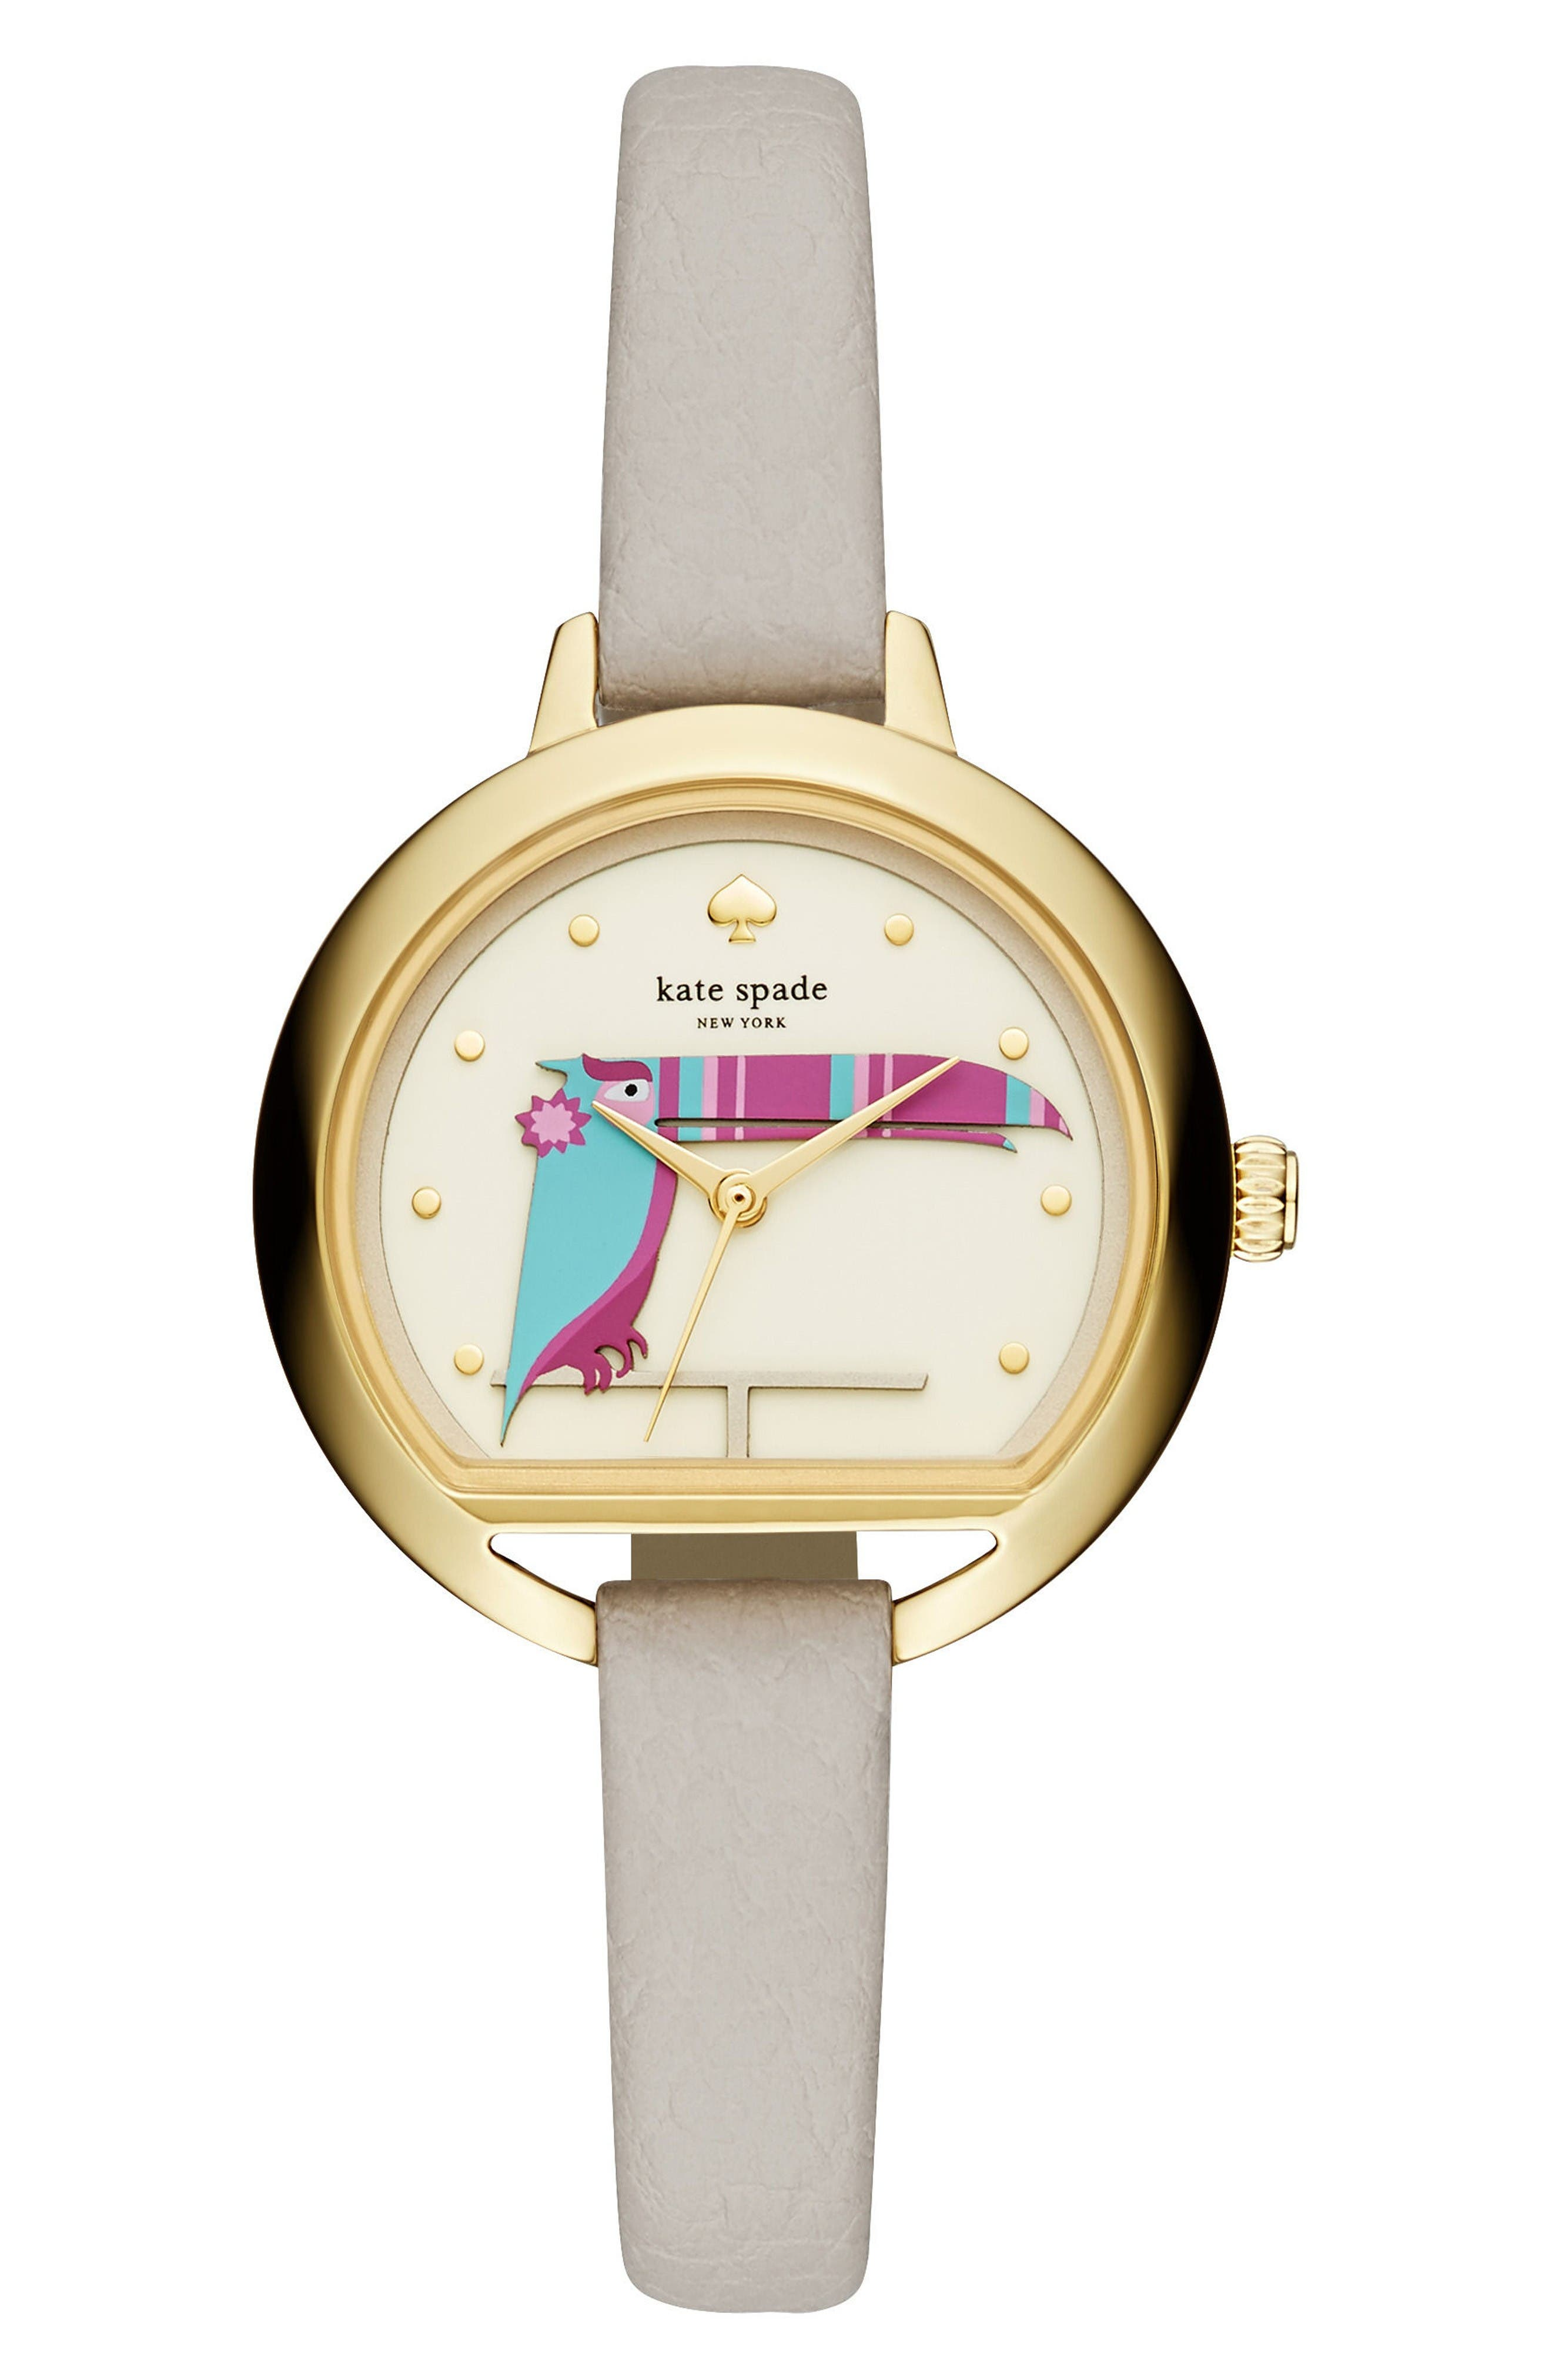 kate spade new york round leather strap watch, 34mm